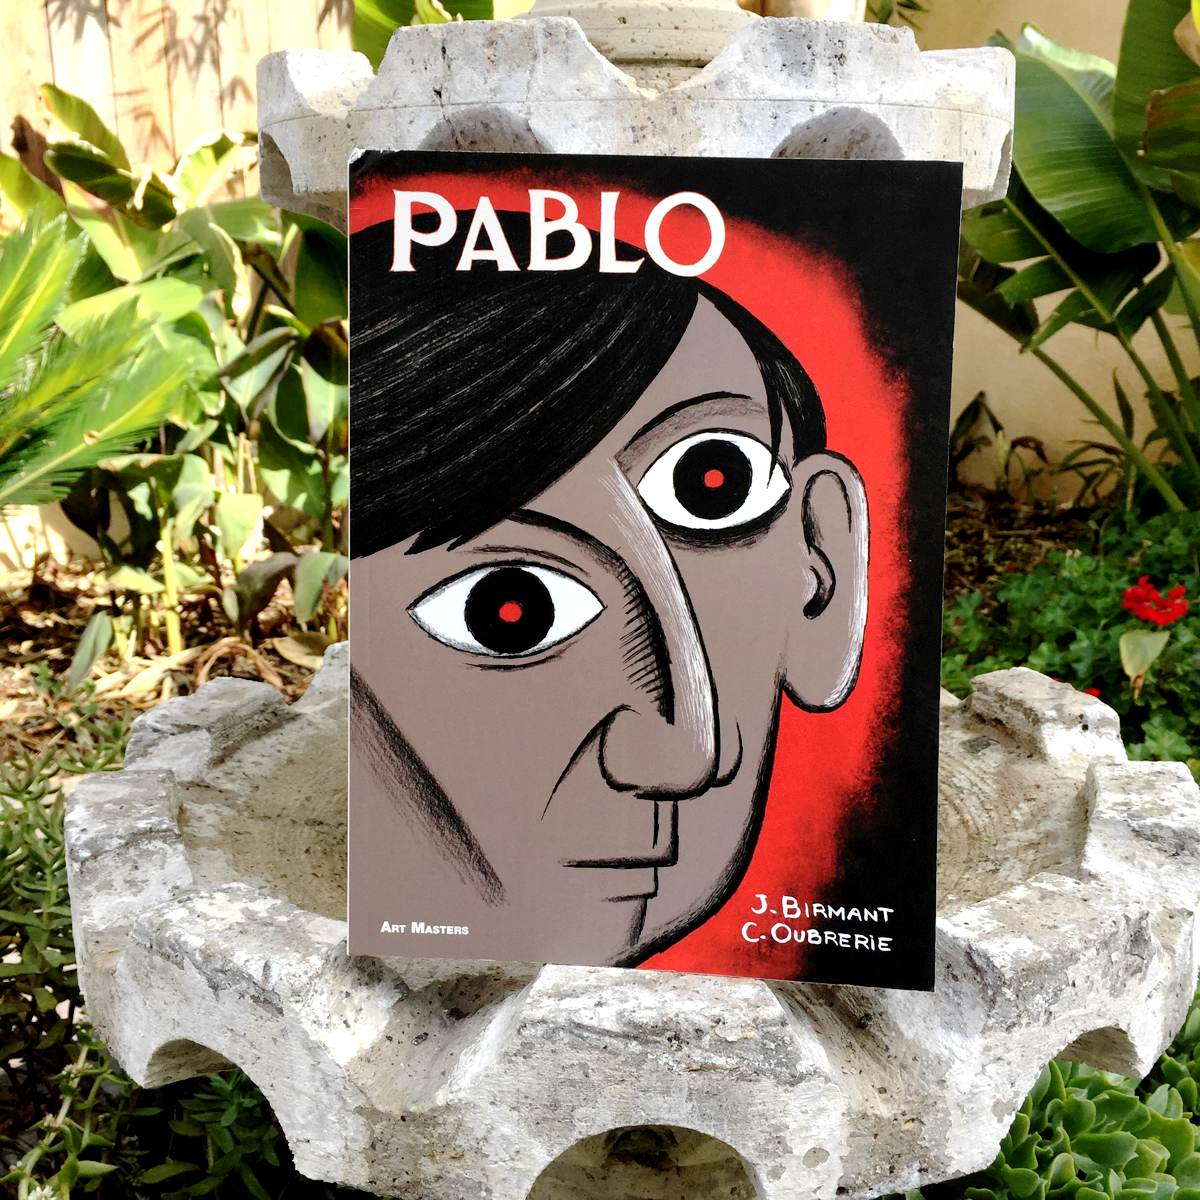 Pablo – A graphic biography captures the prolific life of Picasso